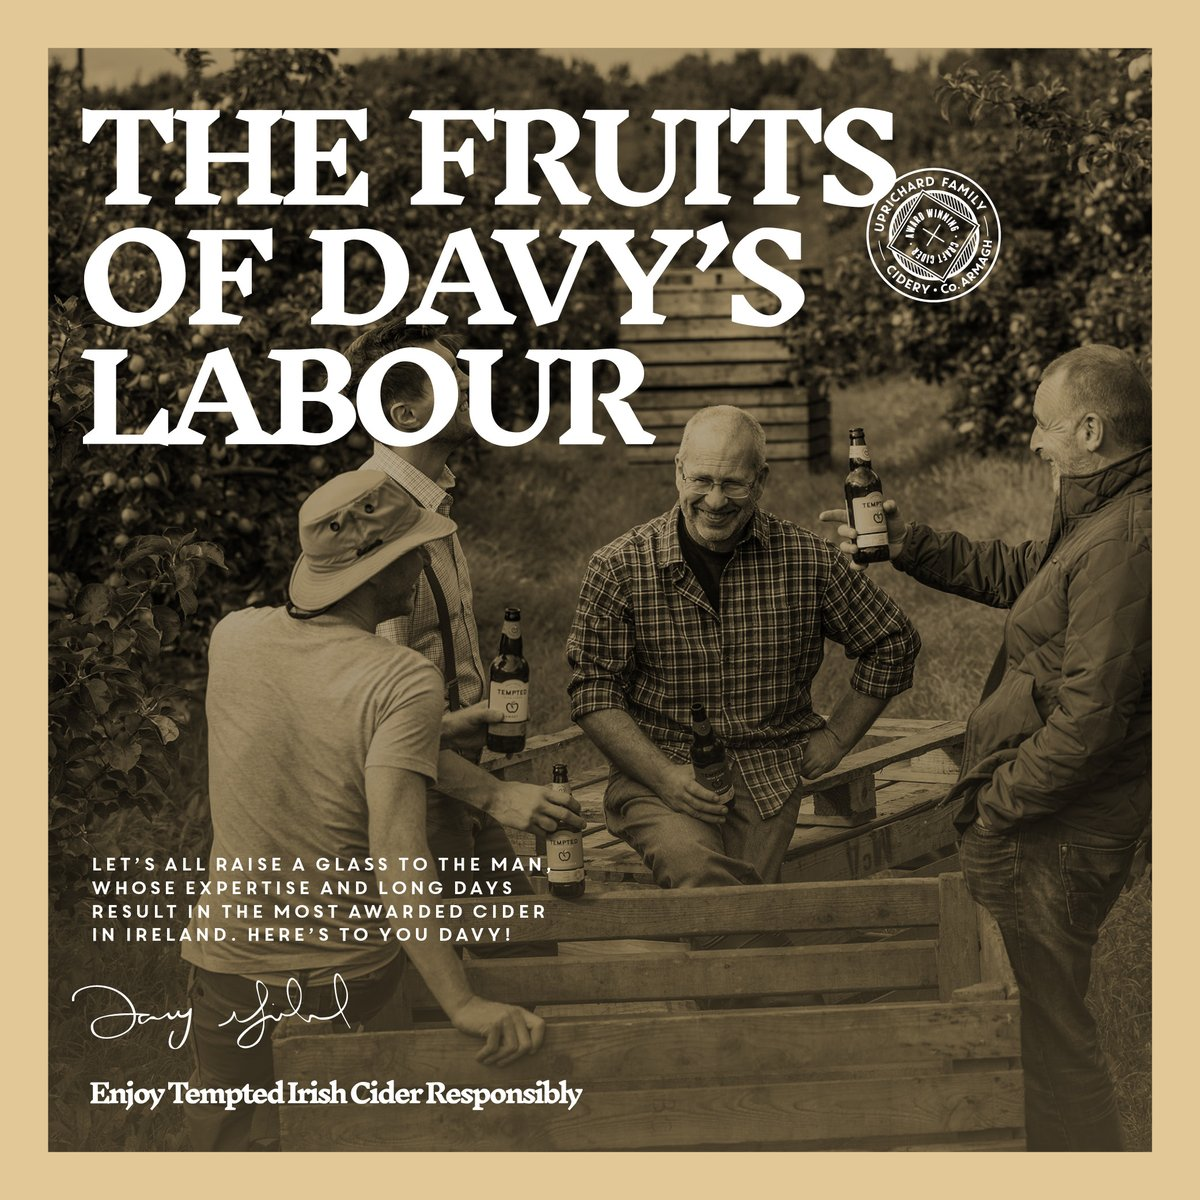 The fruits of Davy's labour